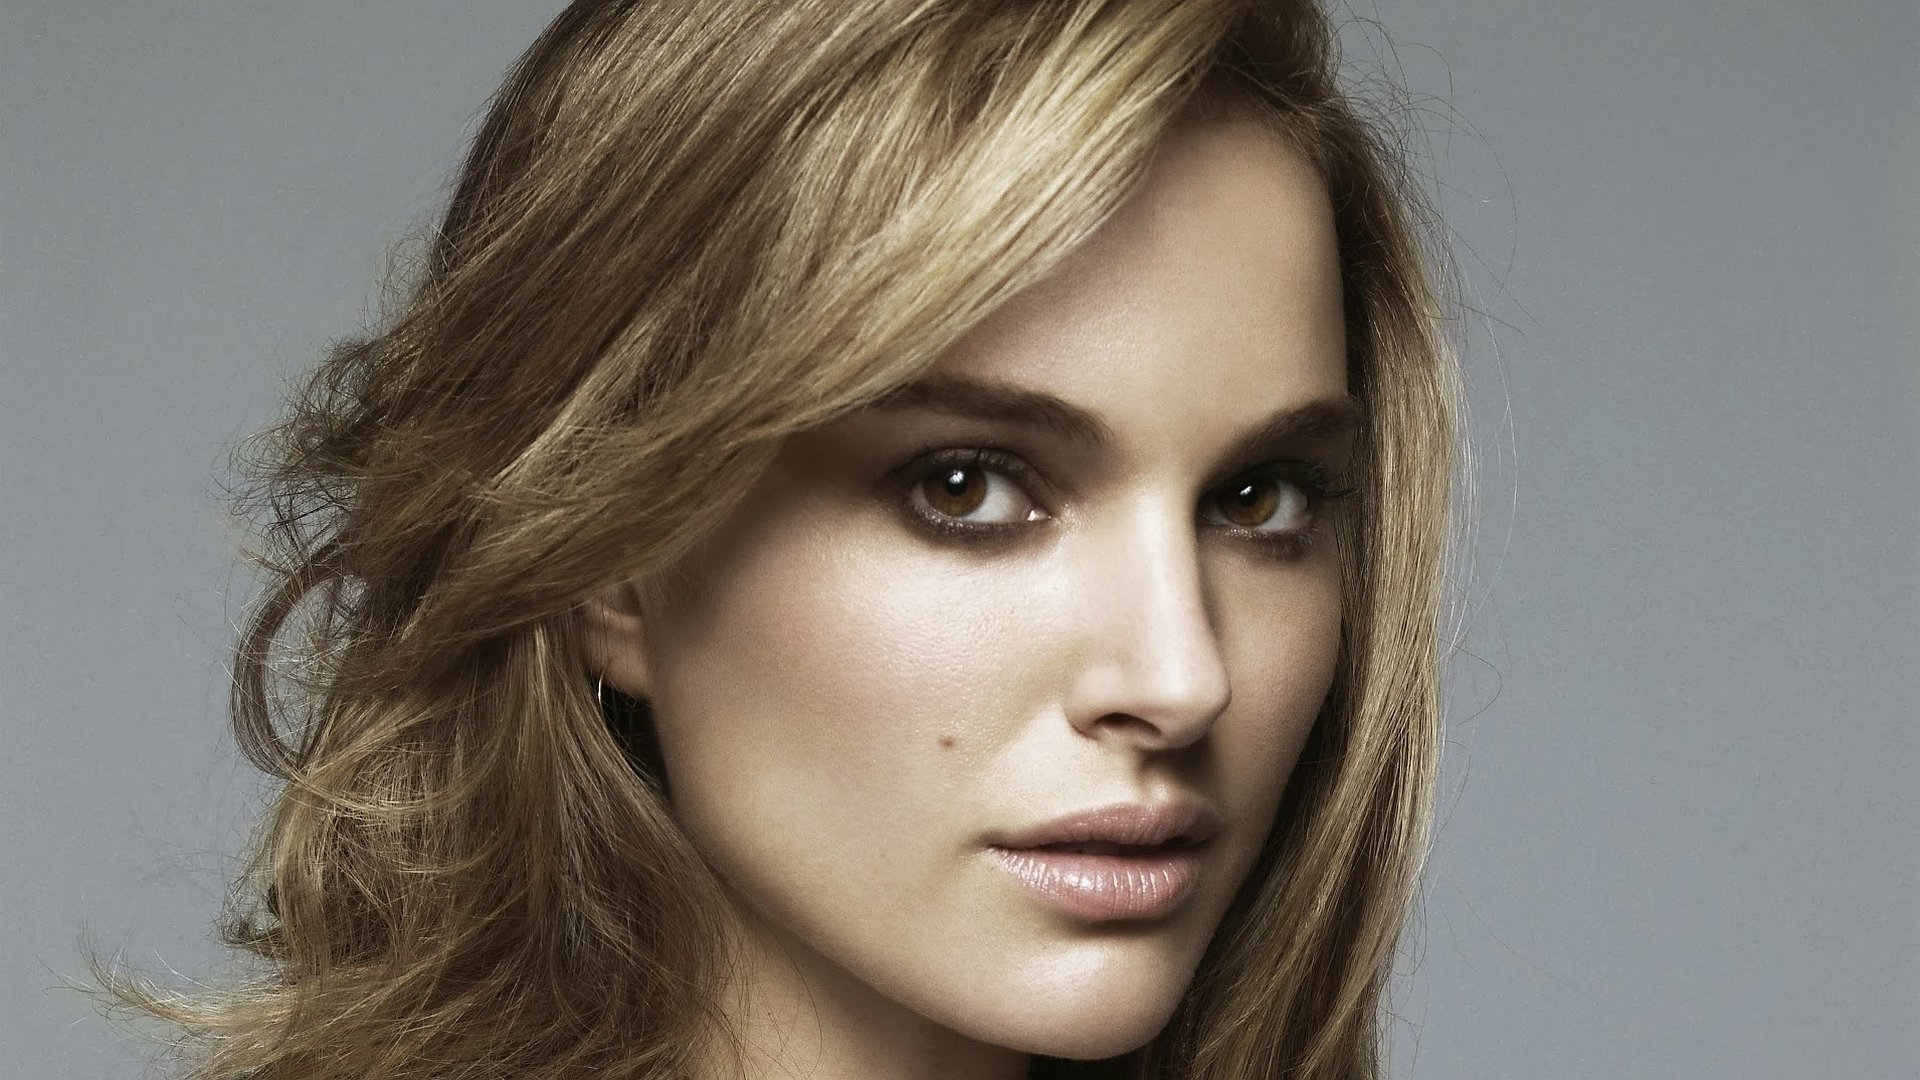 Natalie Portman Full HD Wallpaper And Background Image